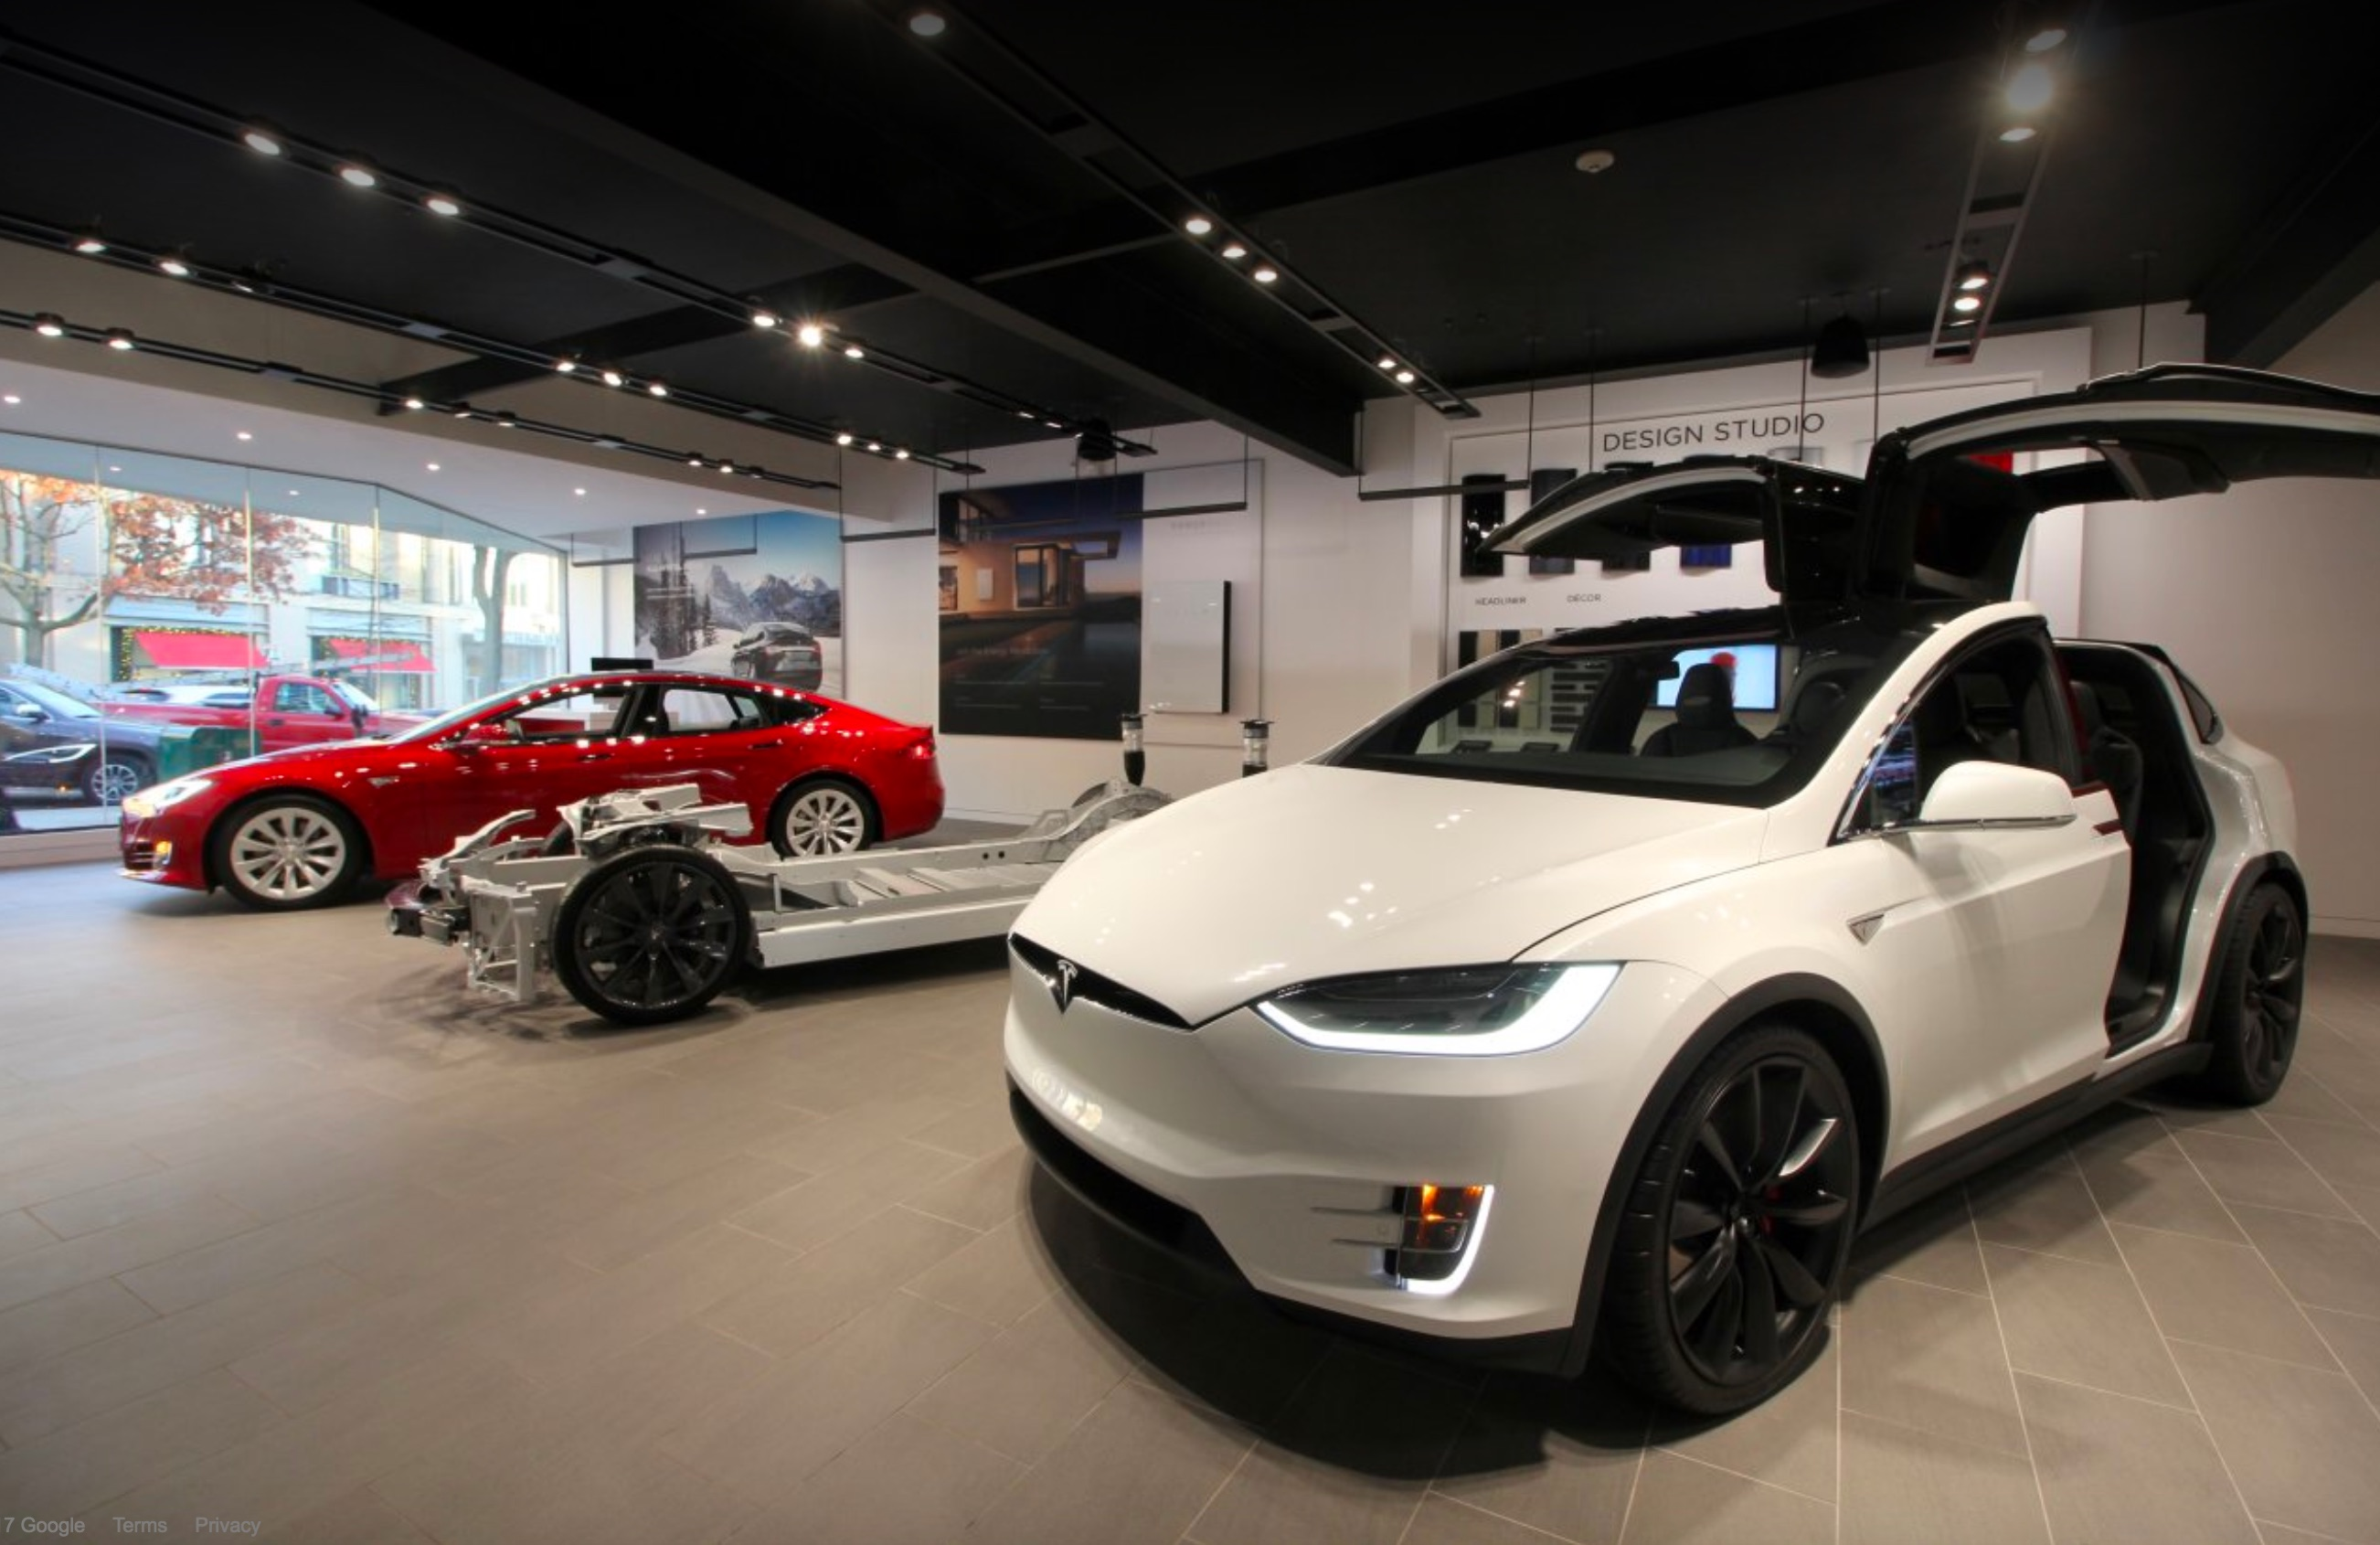 Tesla hit with new Louisiana law that prohibits direct sales in state